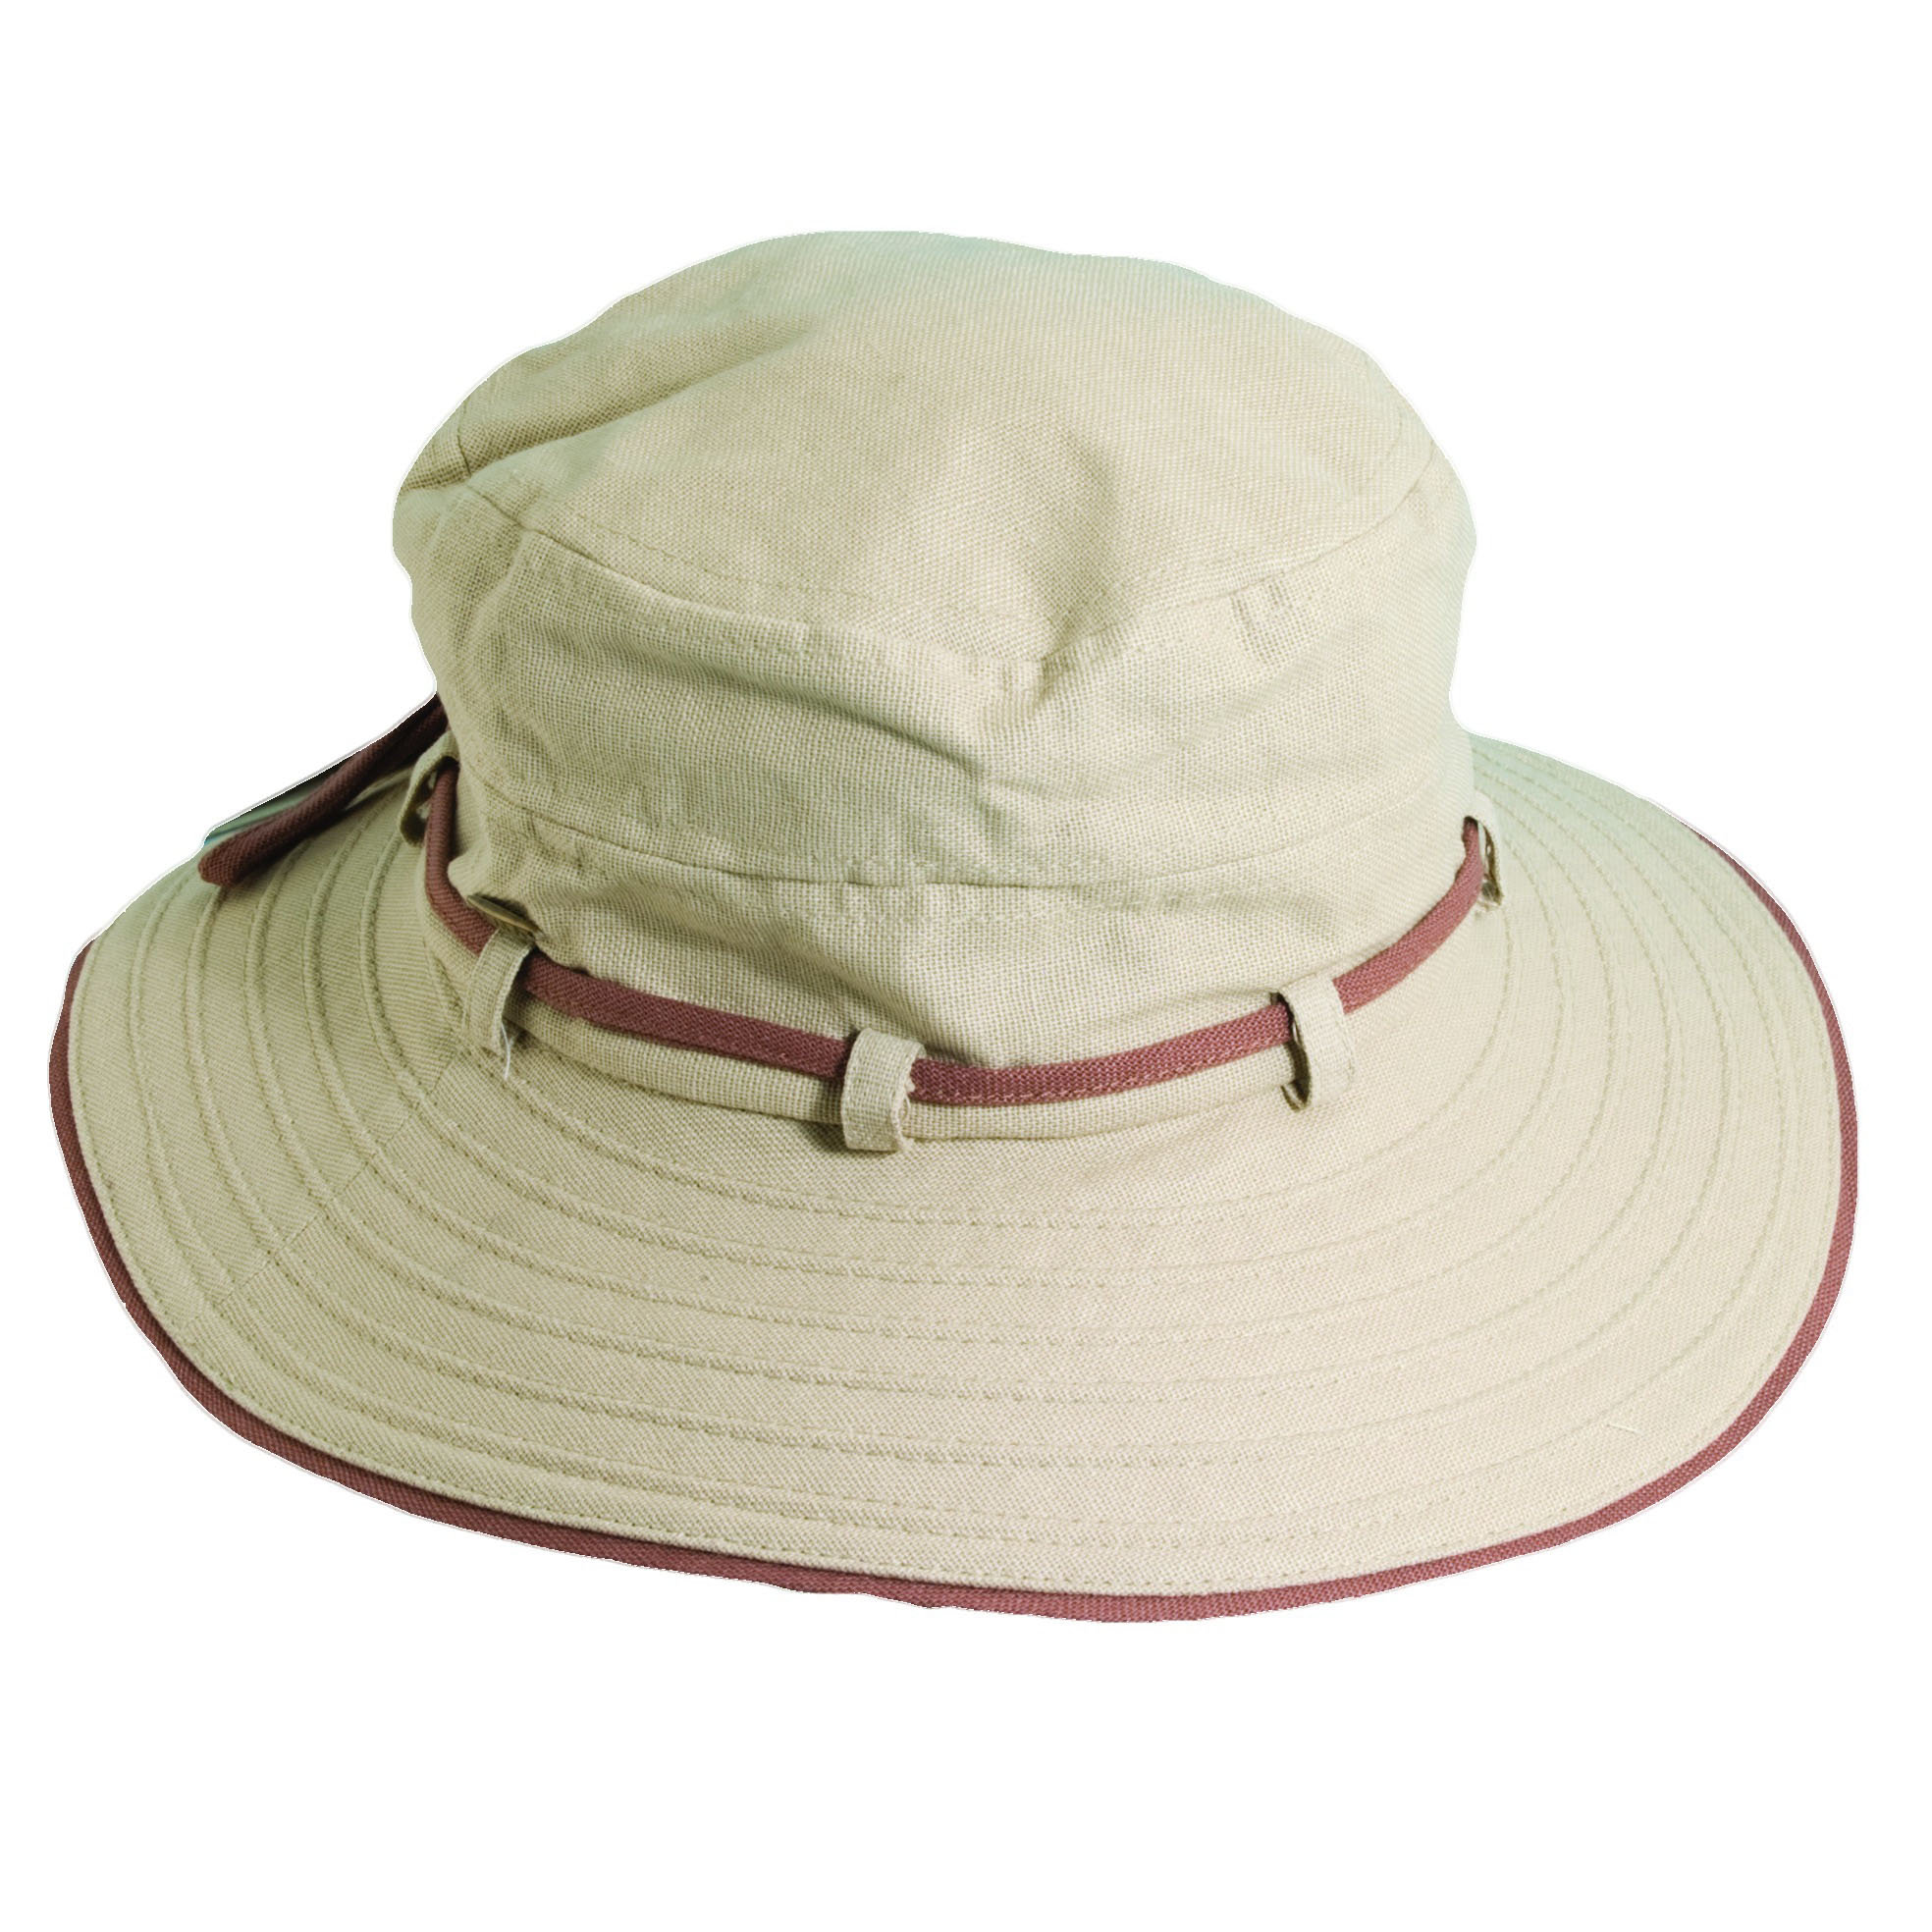 Identical to the Scala Lanikai, but, with a small brim, the Lahaina is made from % cotton canvas, this hat breathes and easily packs up into a bag or suitcase. The kettle edge brim when turned down provides the ultimate sun protection. The square crown is completely lined in cotton poplin/5(32).